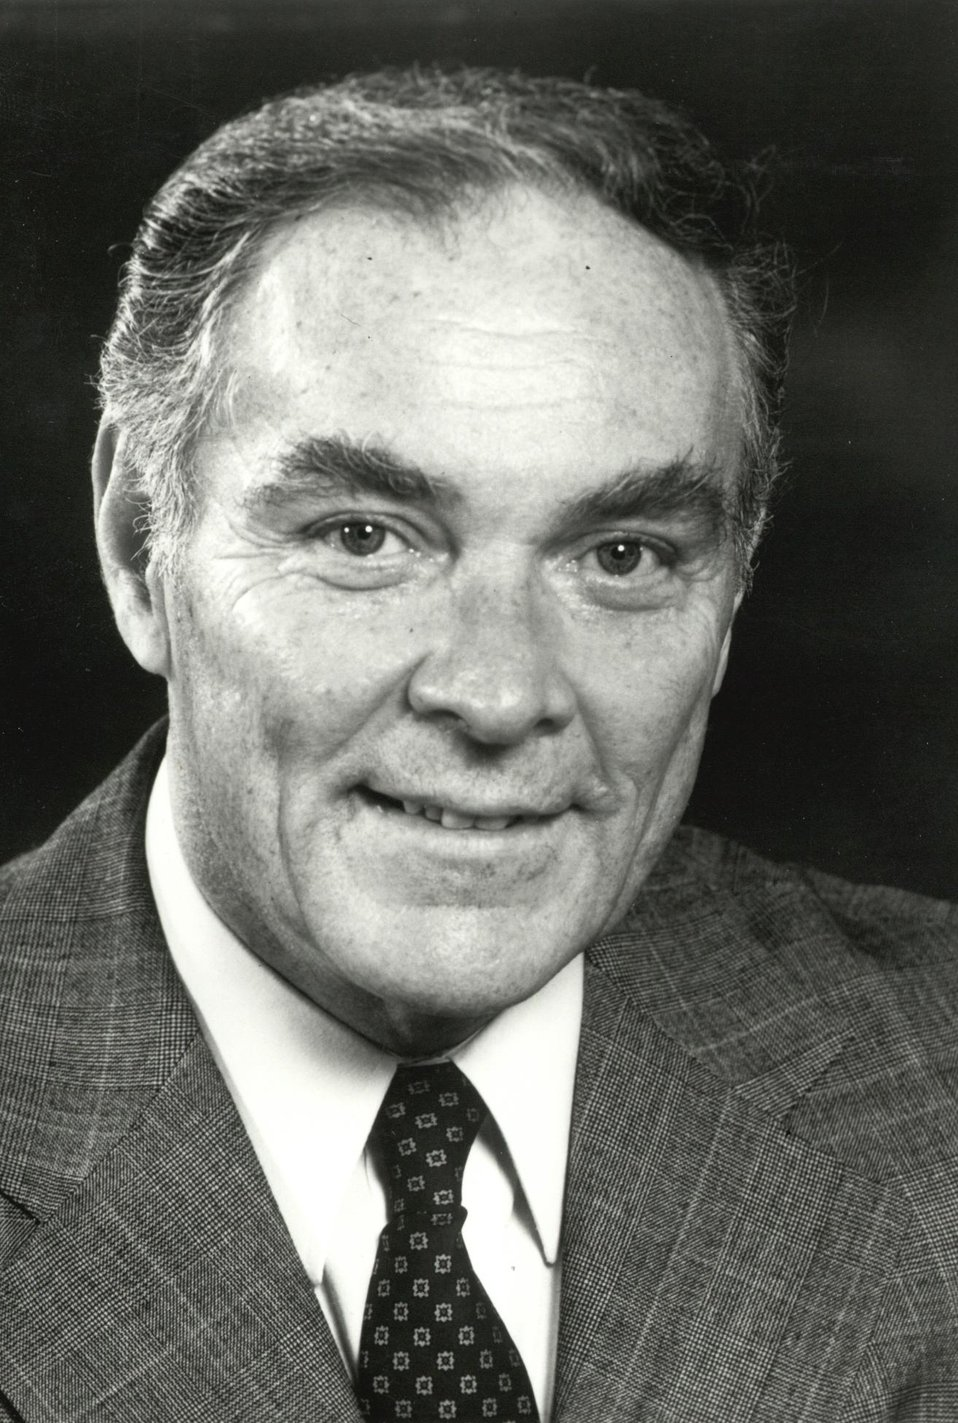 Alexander Meigs Haig, Jr., U.S. Secretary of State